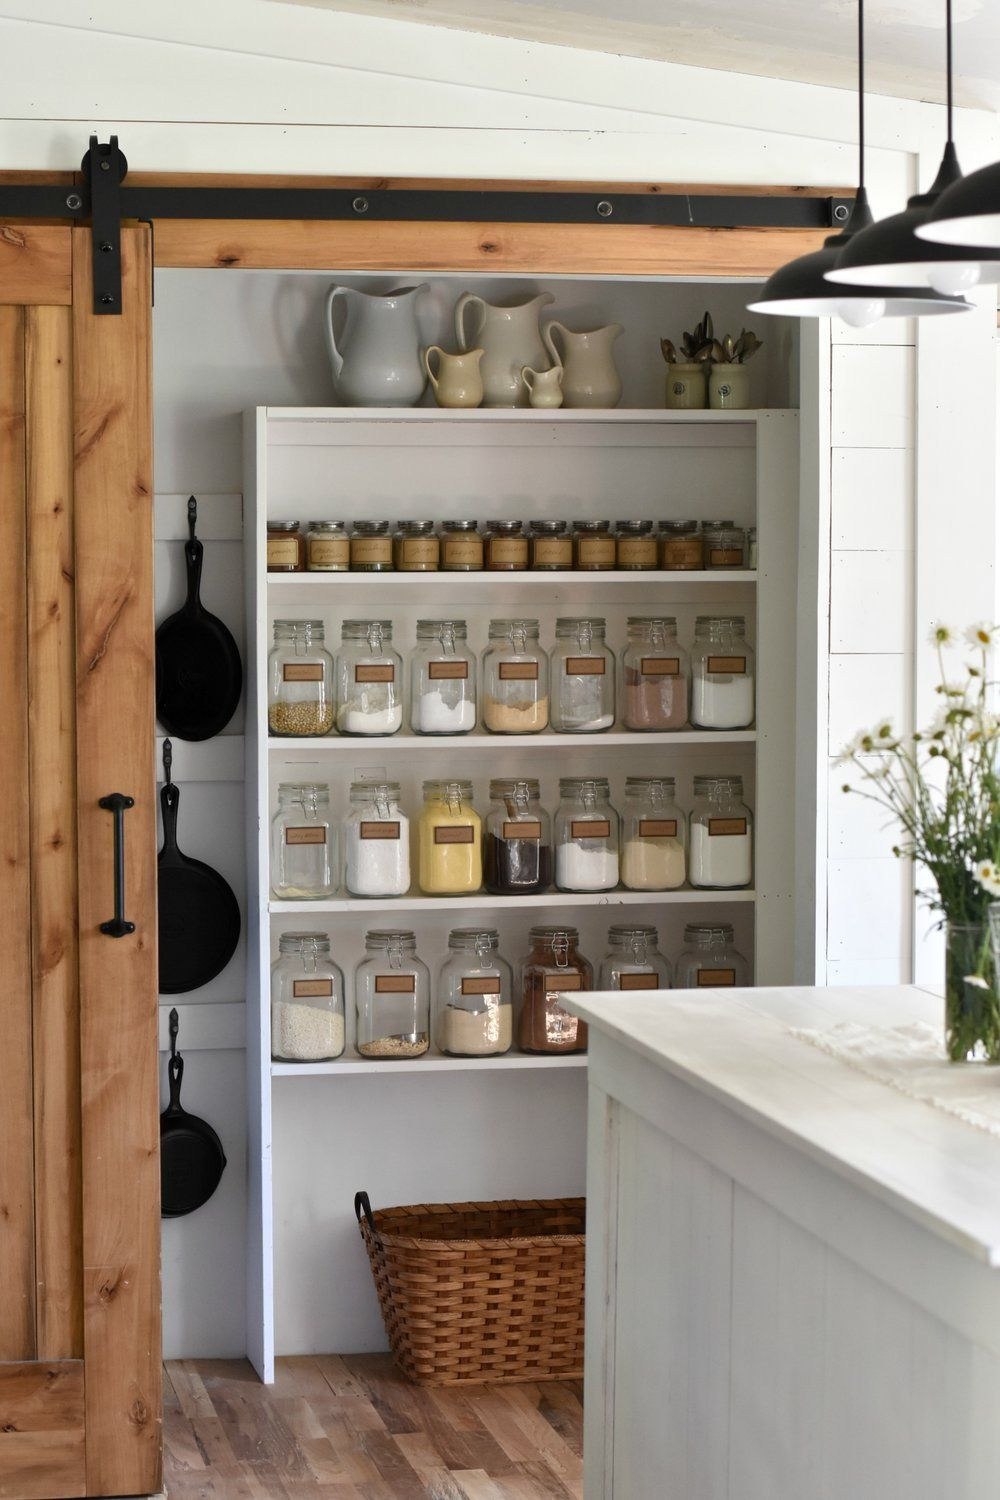 Küchendesign u-typ best ideas to give any pantry farmhouse style  pantry  pinterest